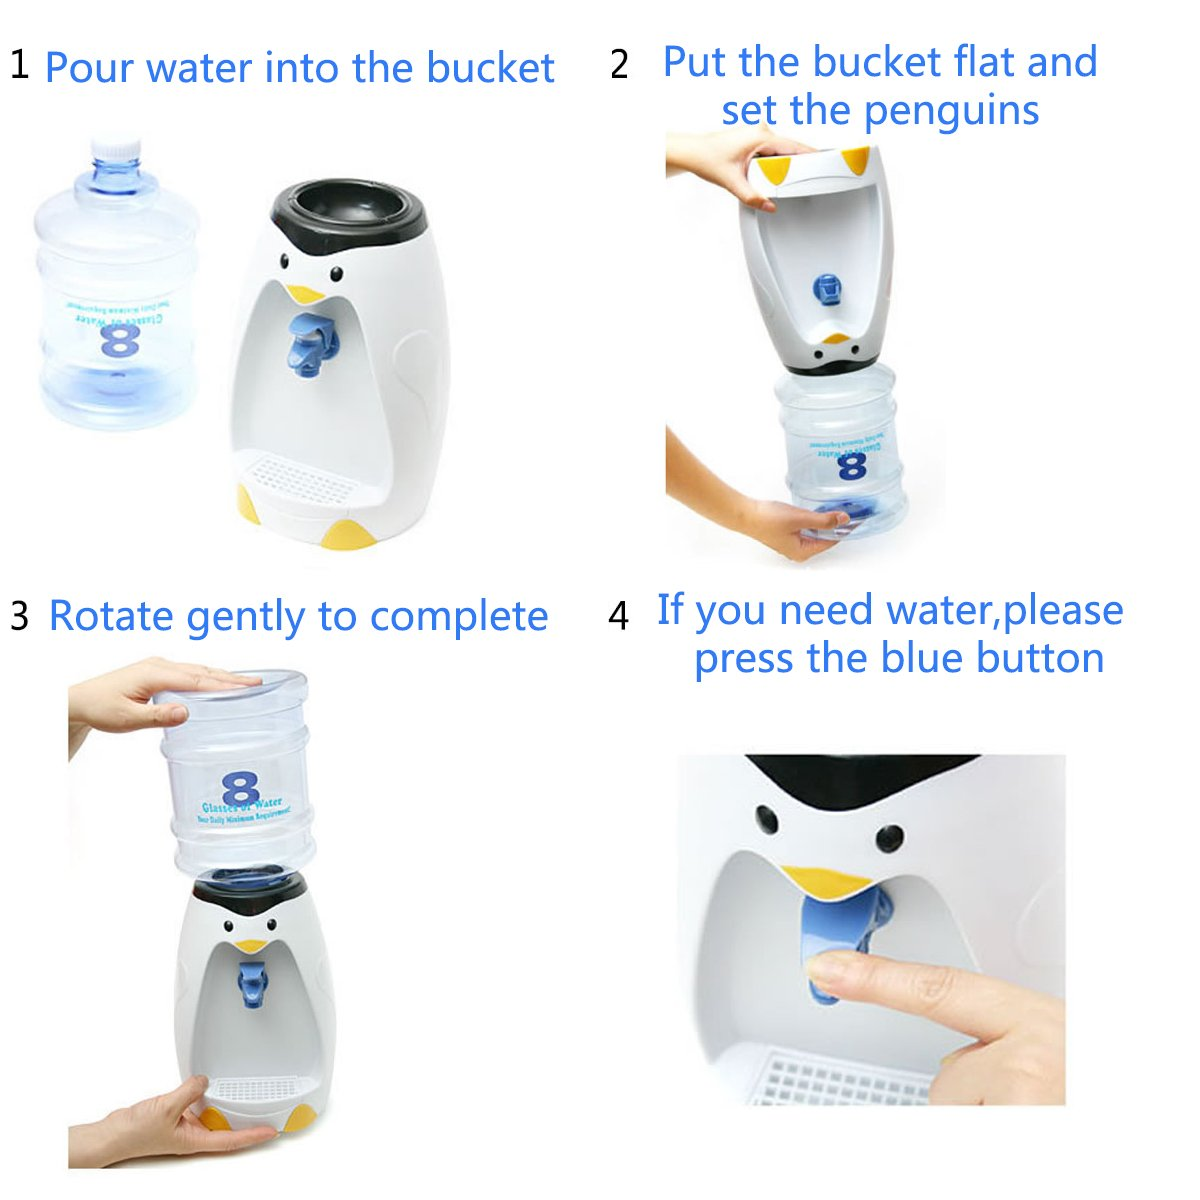 LONGLISHENG 2.5L Capacity Desktop Water Dispenser with Bottle with Food Grade Silicone Tube